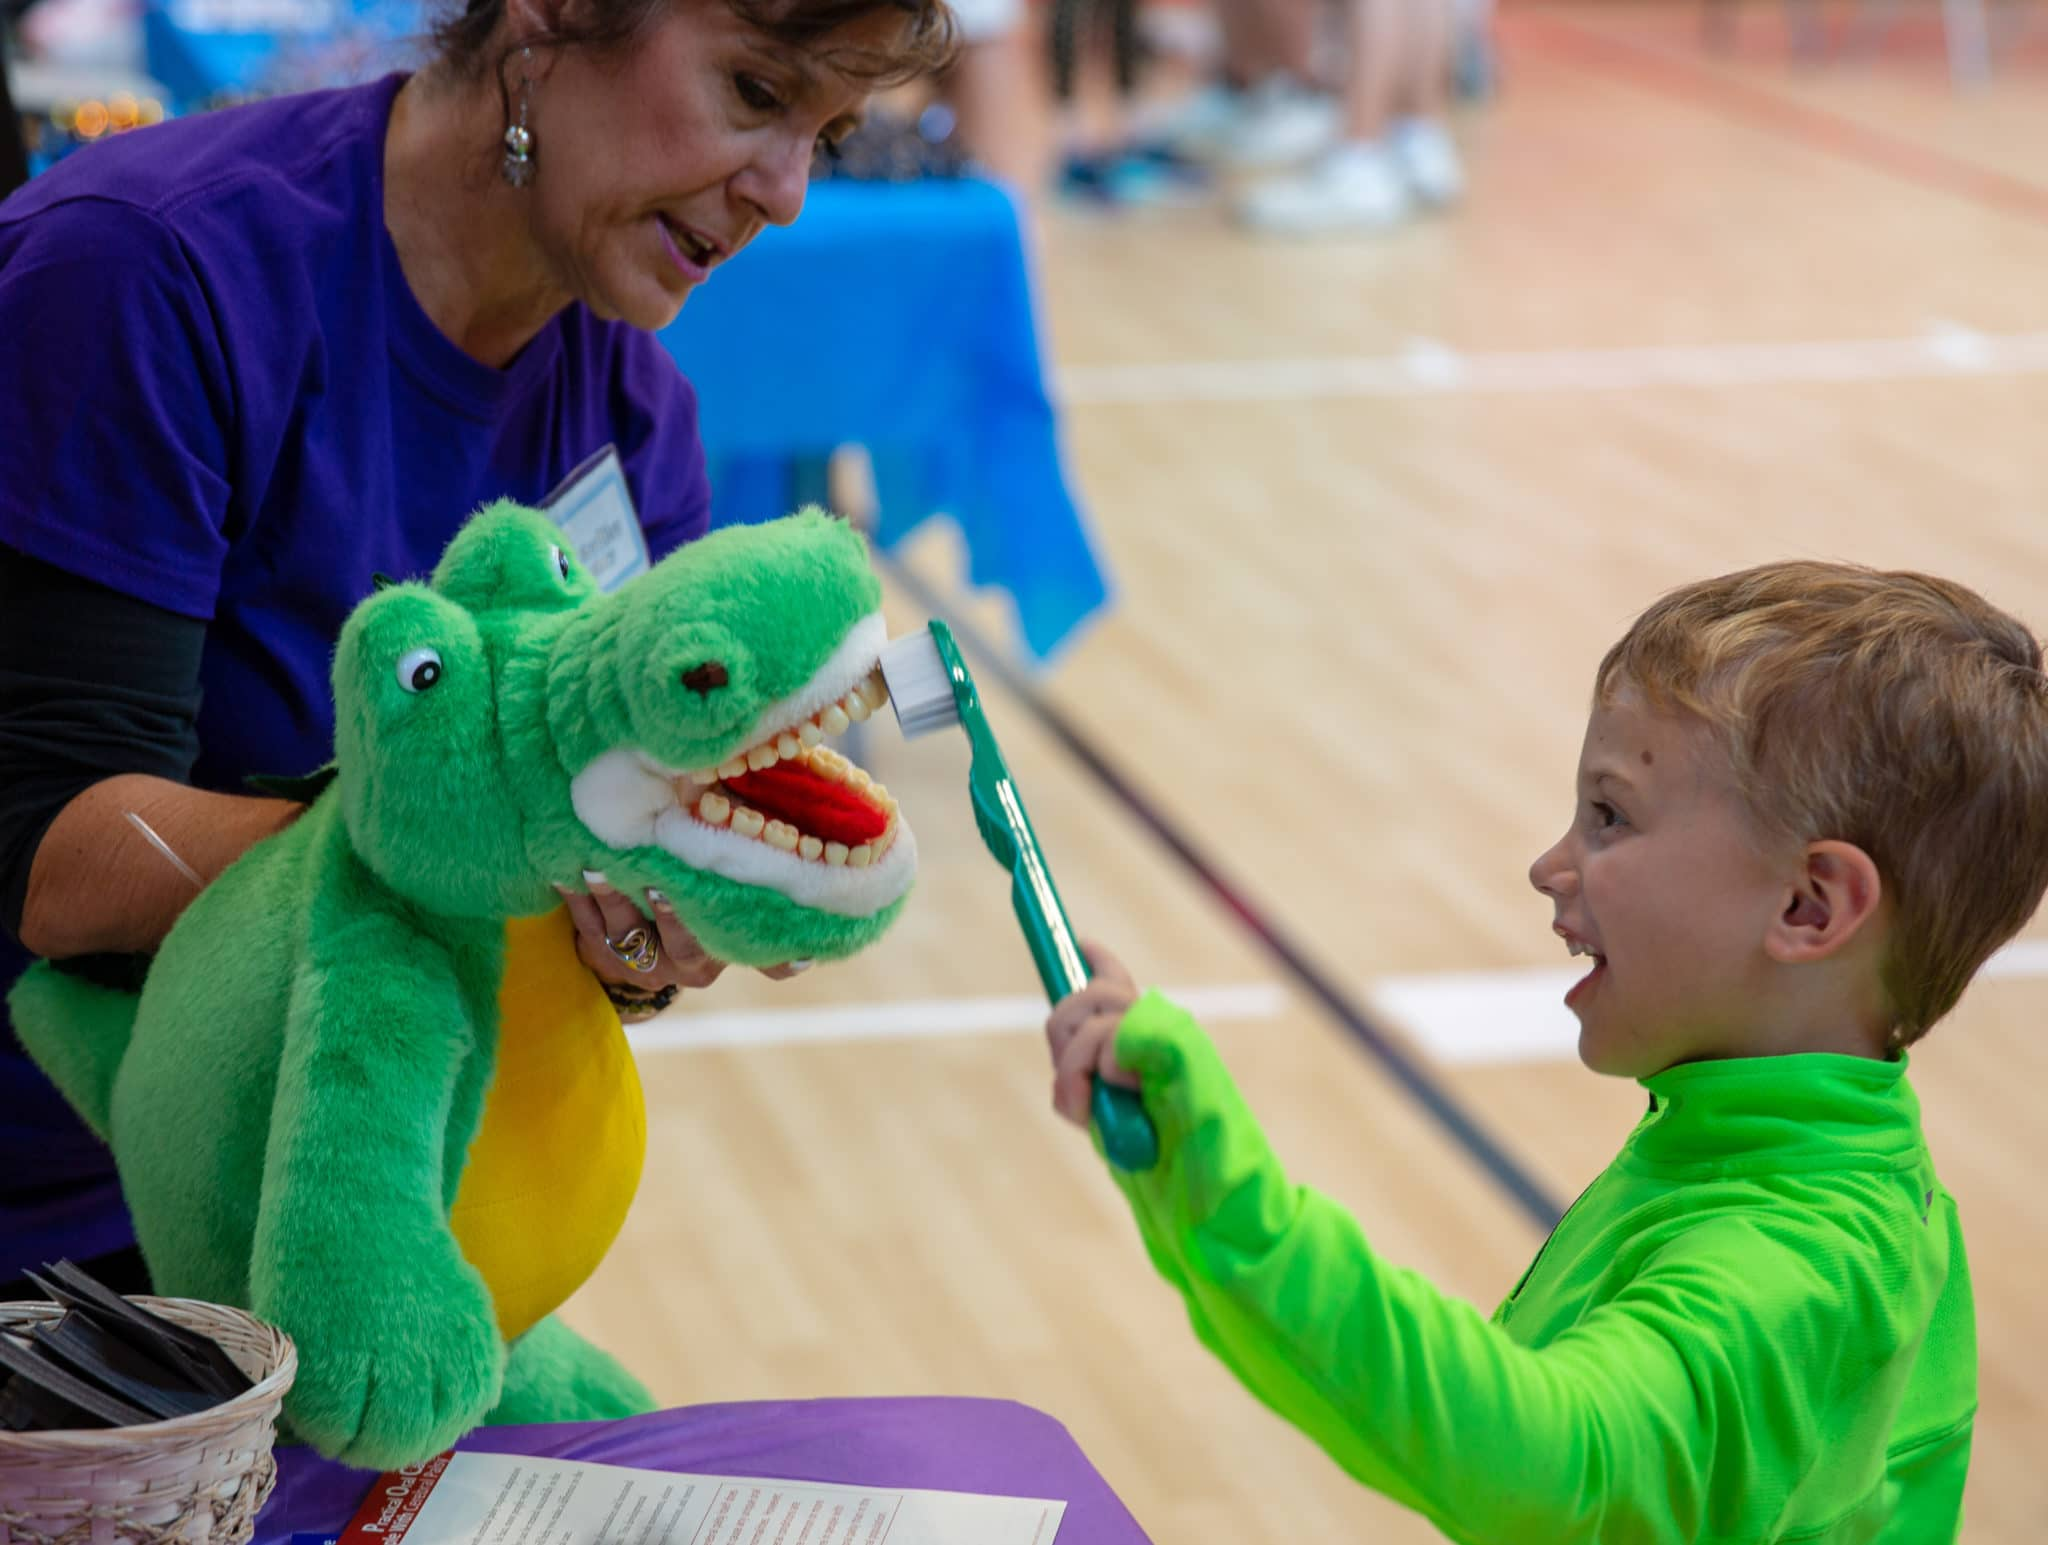 A Young Athletes uses an oversized toothbrush and a stuffed animal to show a volunteer the right way to brush teeth